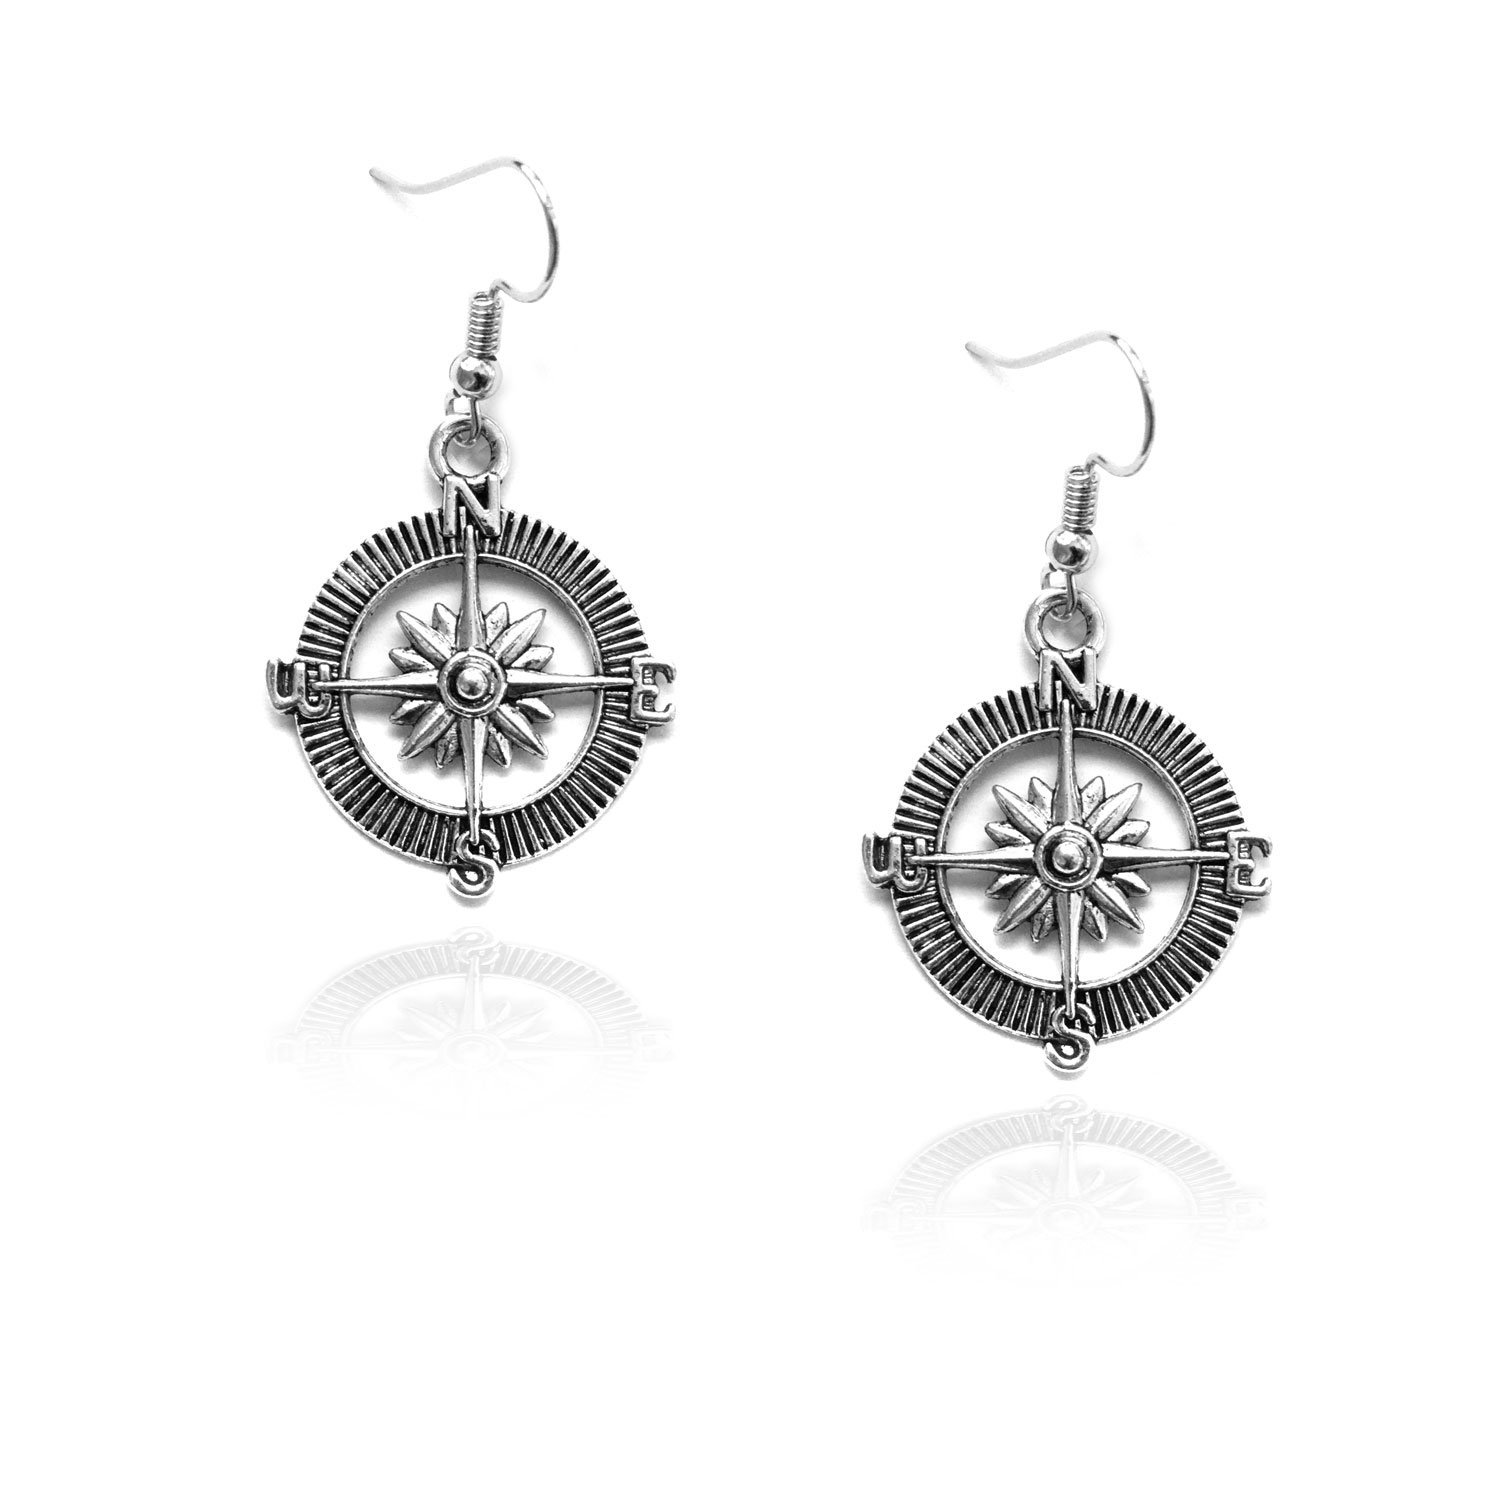 Antiqued Silver Nautical Compass Drop Earrings